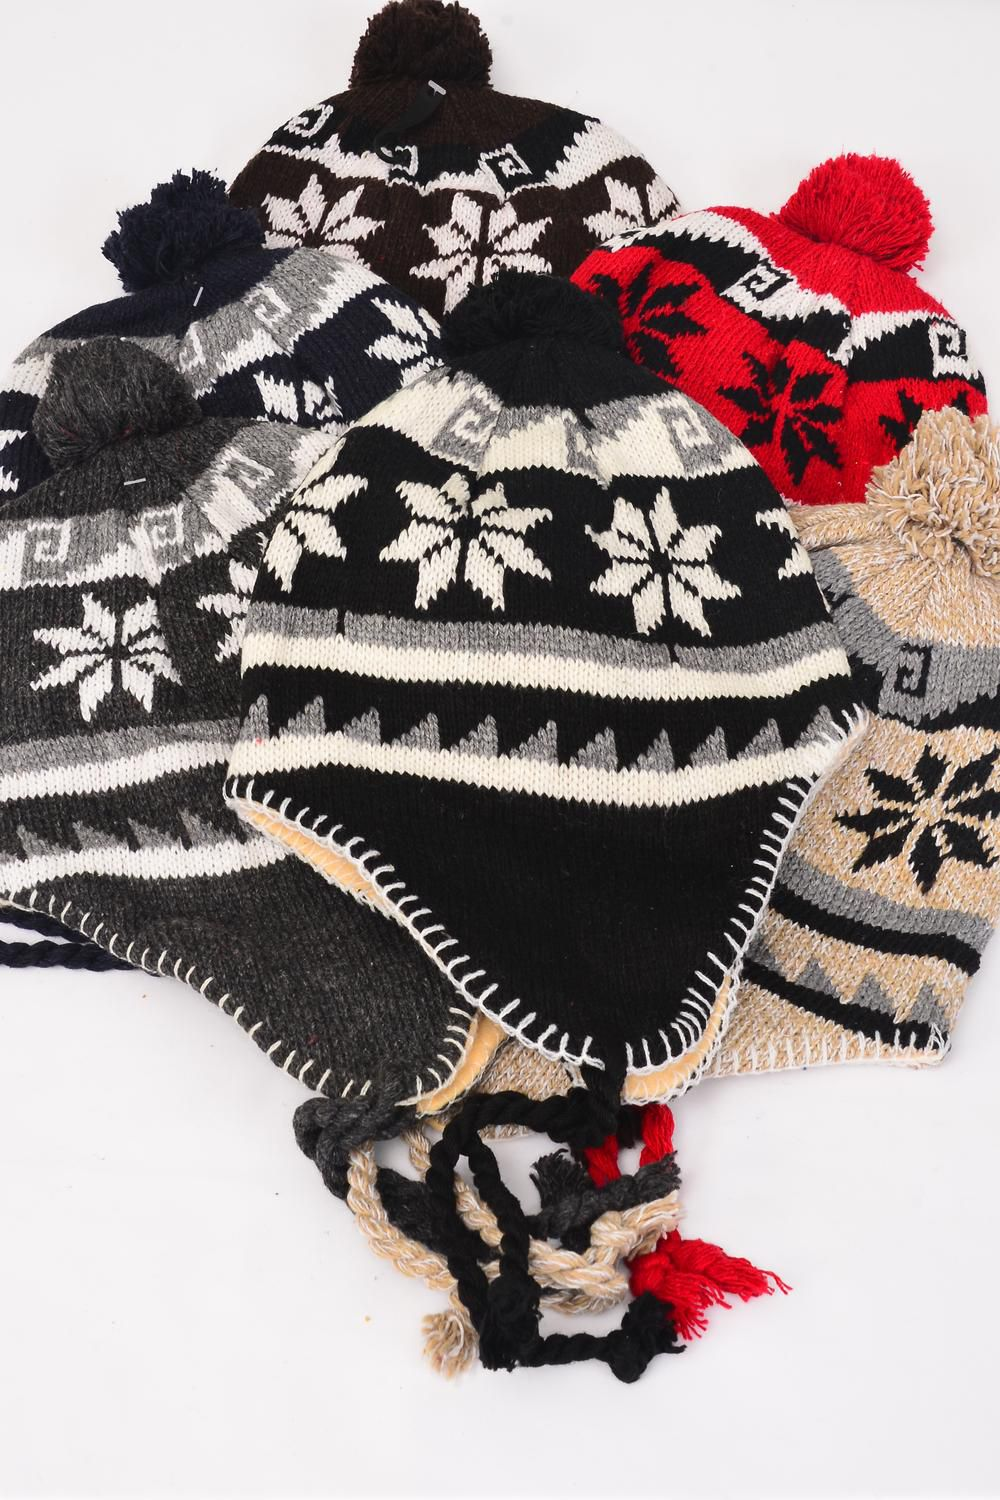 Knit Cap Snow flake Ball Fleece/DZ Snow Flake Ball cap,2 of each Color Asst,W OPP Bag & UPC Code -